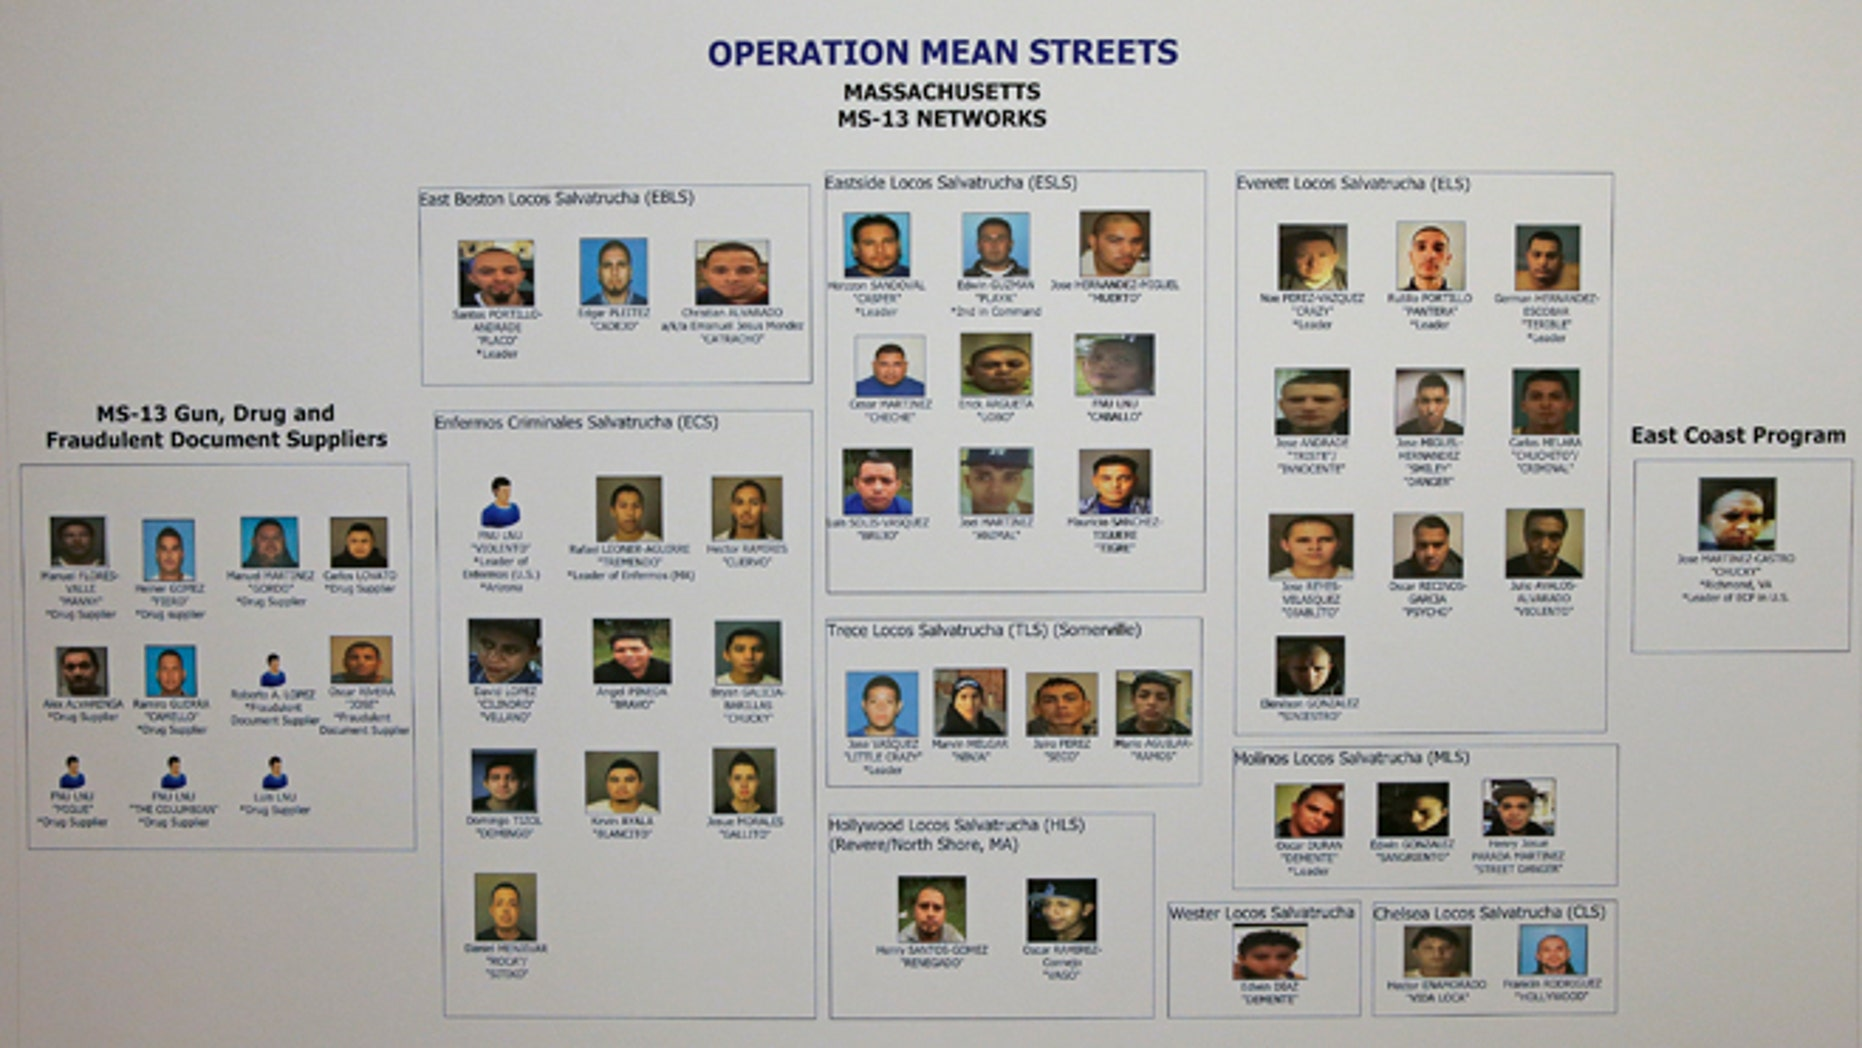 An array of head shots of more than 50 alleged gang members is displayed during a news conference at the U.S. Attorney's office in Boston, Friday, Jan. 29, 2016. Authorities say they have charged over 50 members of the MS-13 gang in and around Boston. The gang is notoriously violent and known for using machetes to kill victims.  Nearly 40 members of the gang were arrested on Friday morning, according to officials. (AP Photo/Charles Krupa)